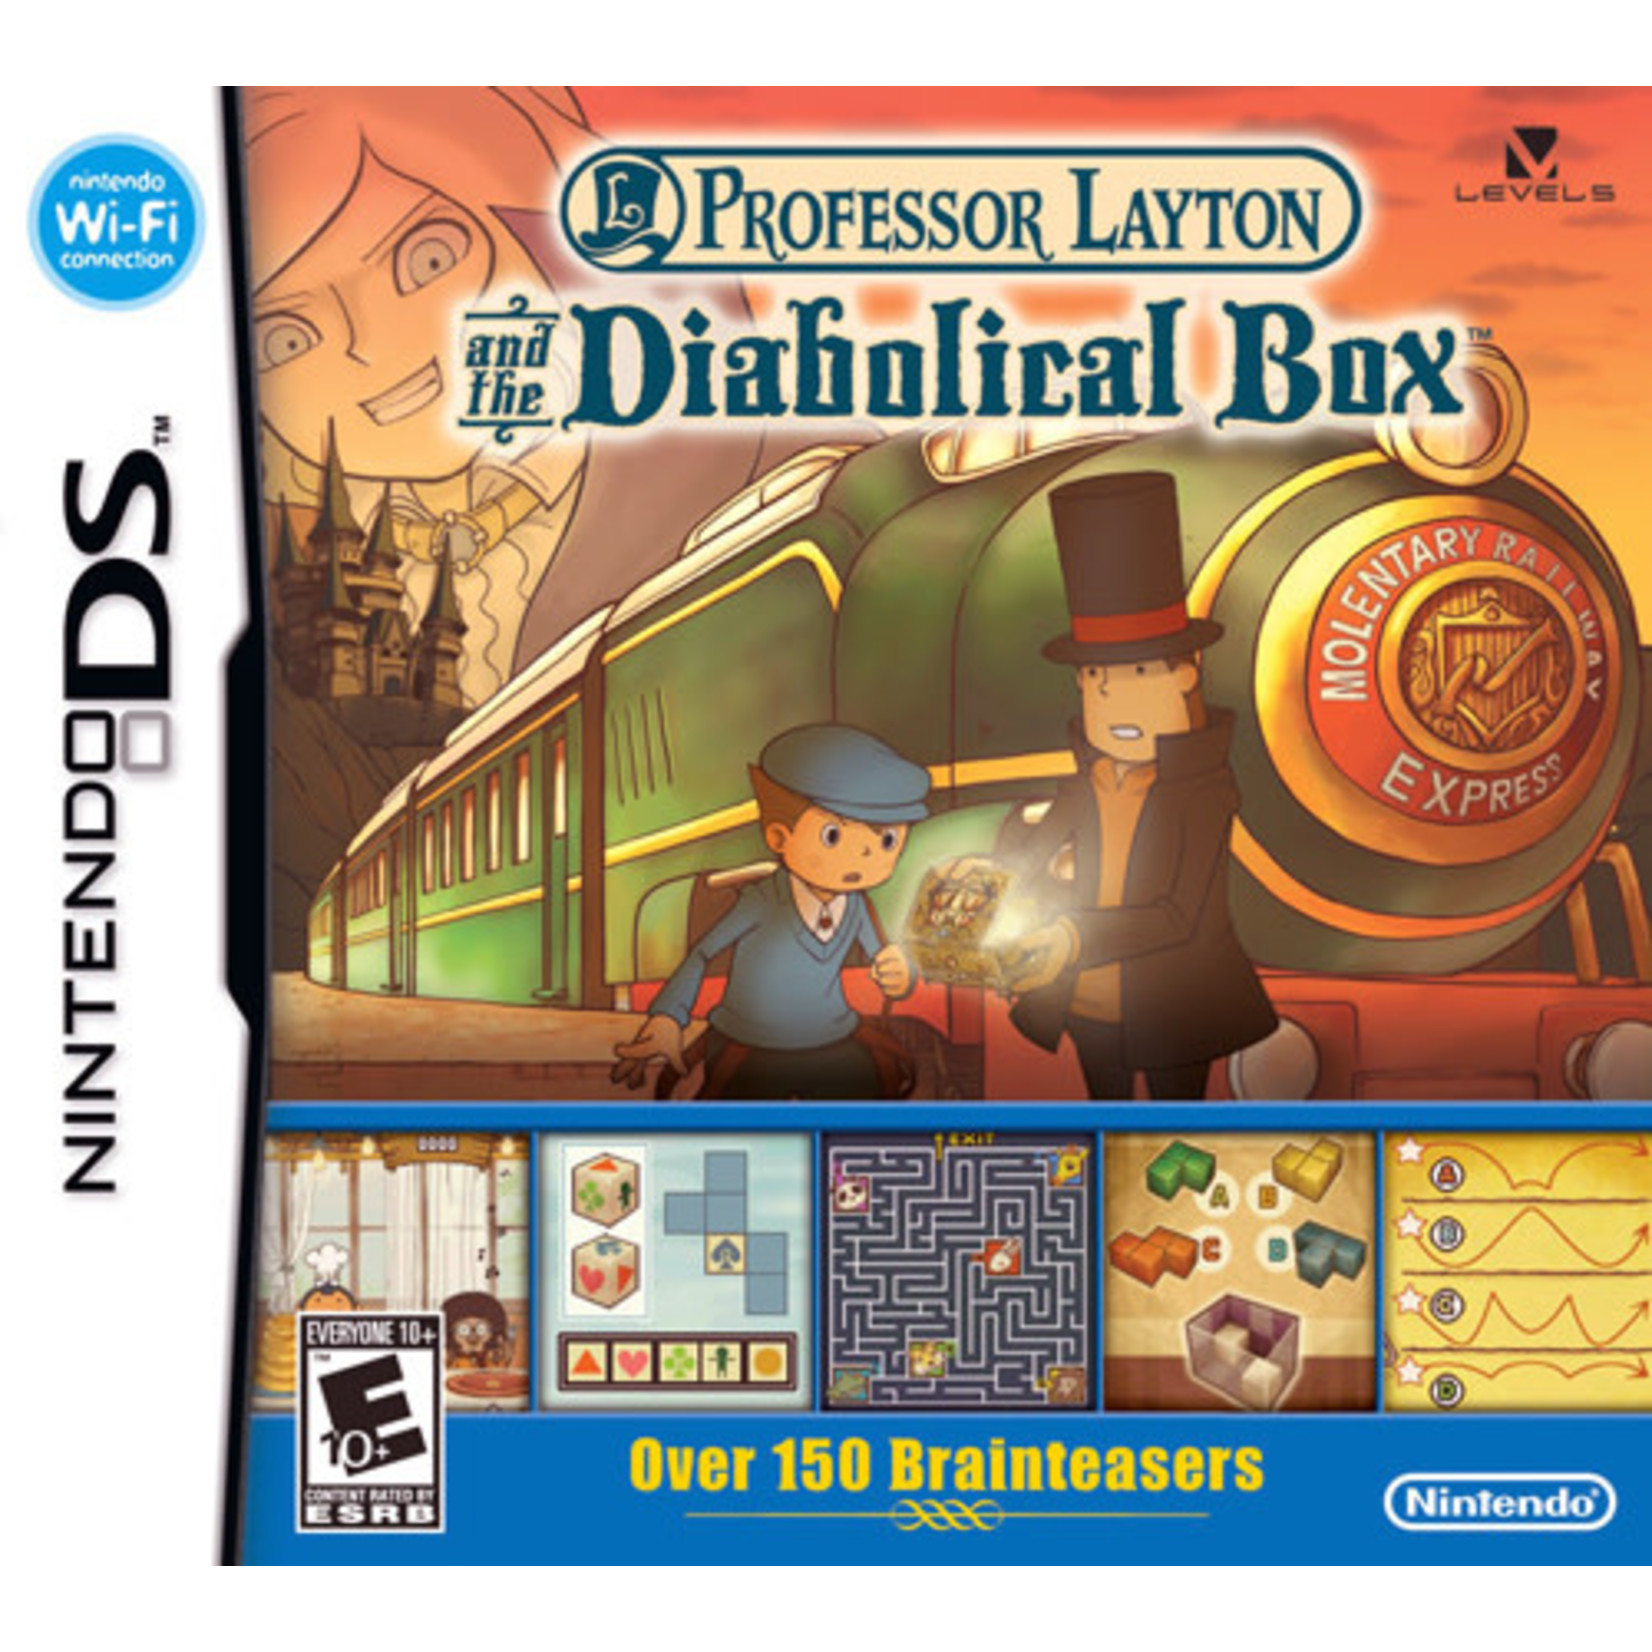 DS-PROFESSOR LAYTON AND THE DIABOLICAL BOX